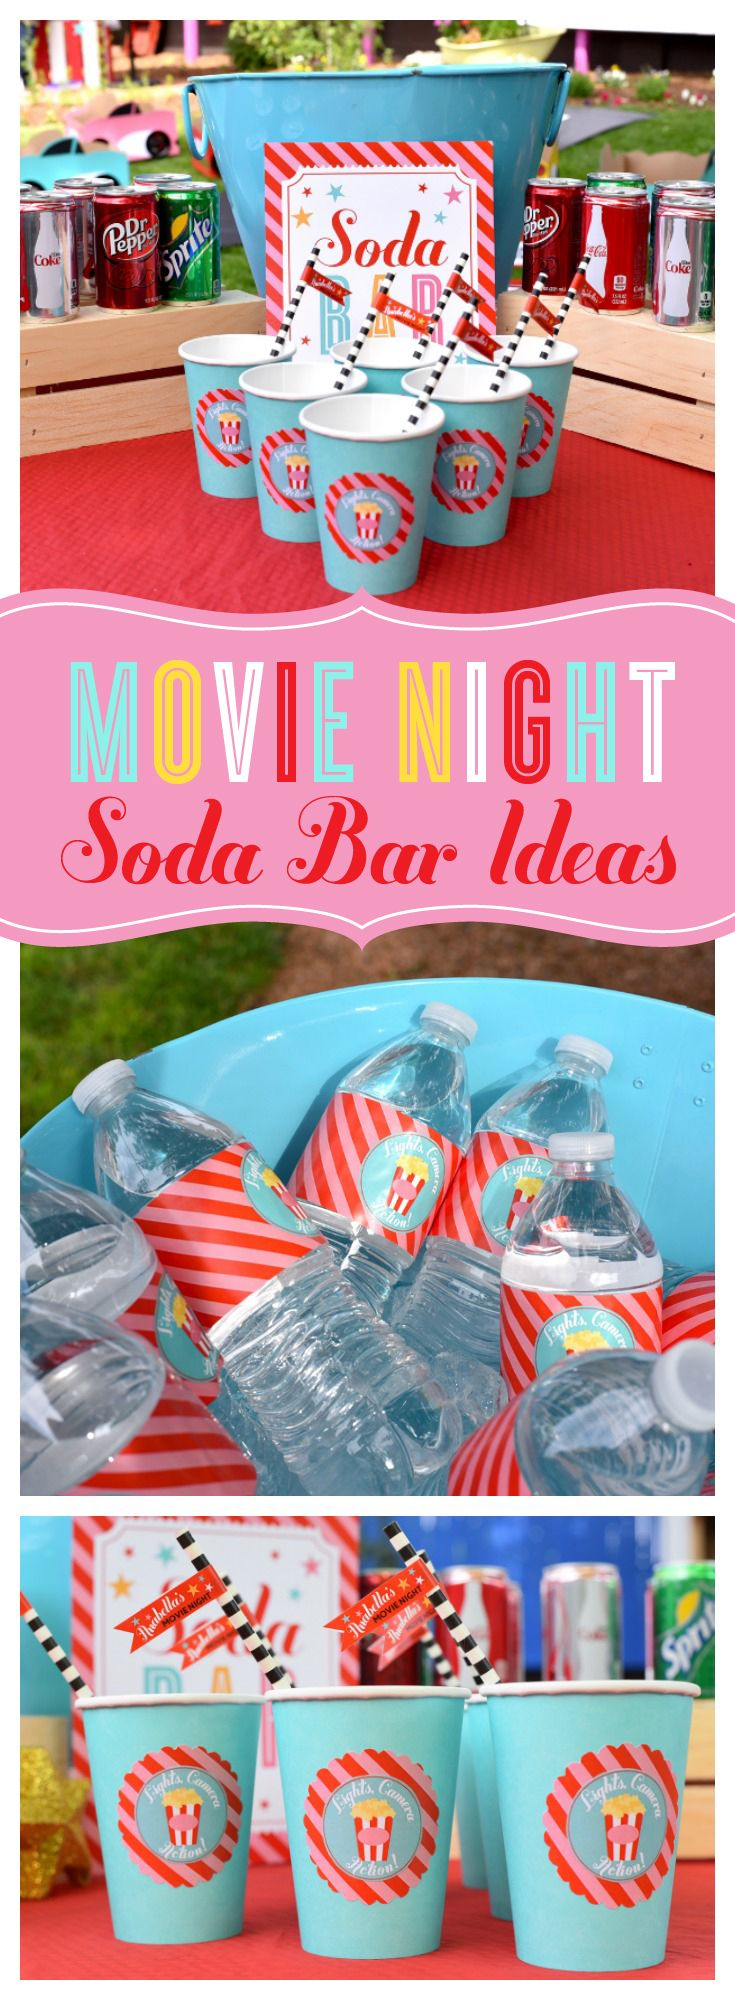 Mygrafico   images uploads  iha104  gafcarnivalfun additionally 9 besides Fifty Shades Of Grey Ladies Night Party also Free Movie Night Party Printables By Printabelle also Star Wars Printable Bingo Game. on free movie night party printables by printabelle